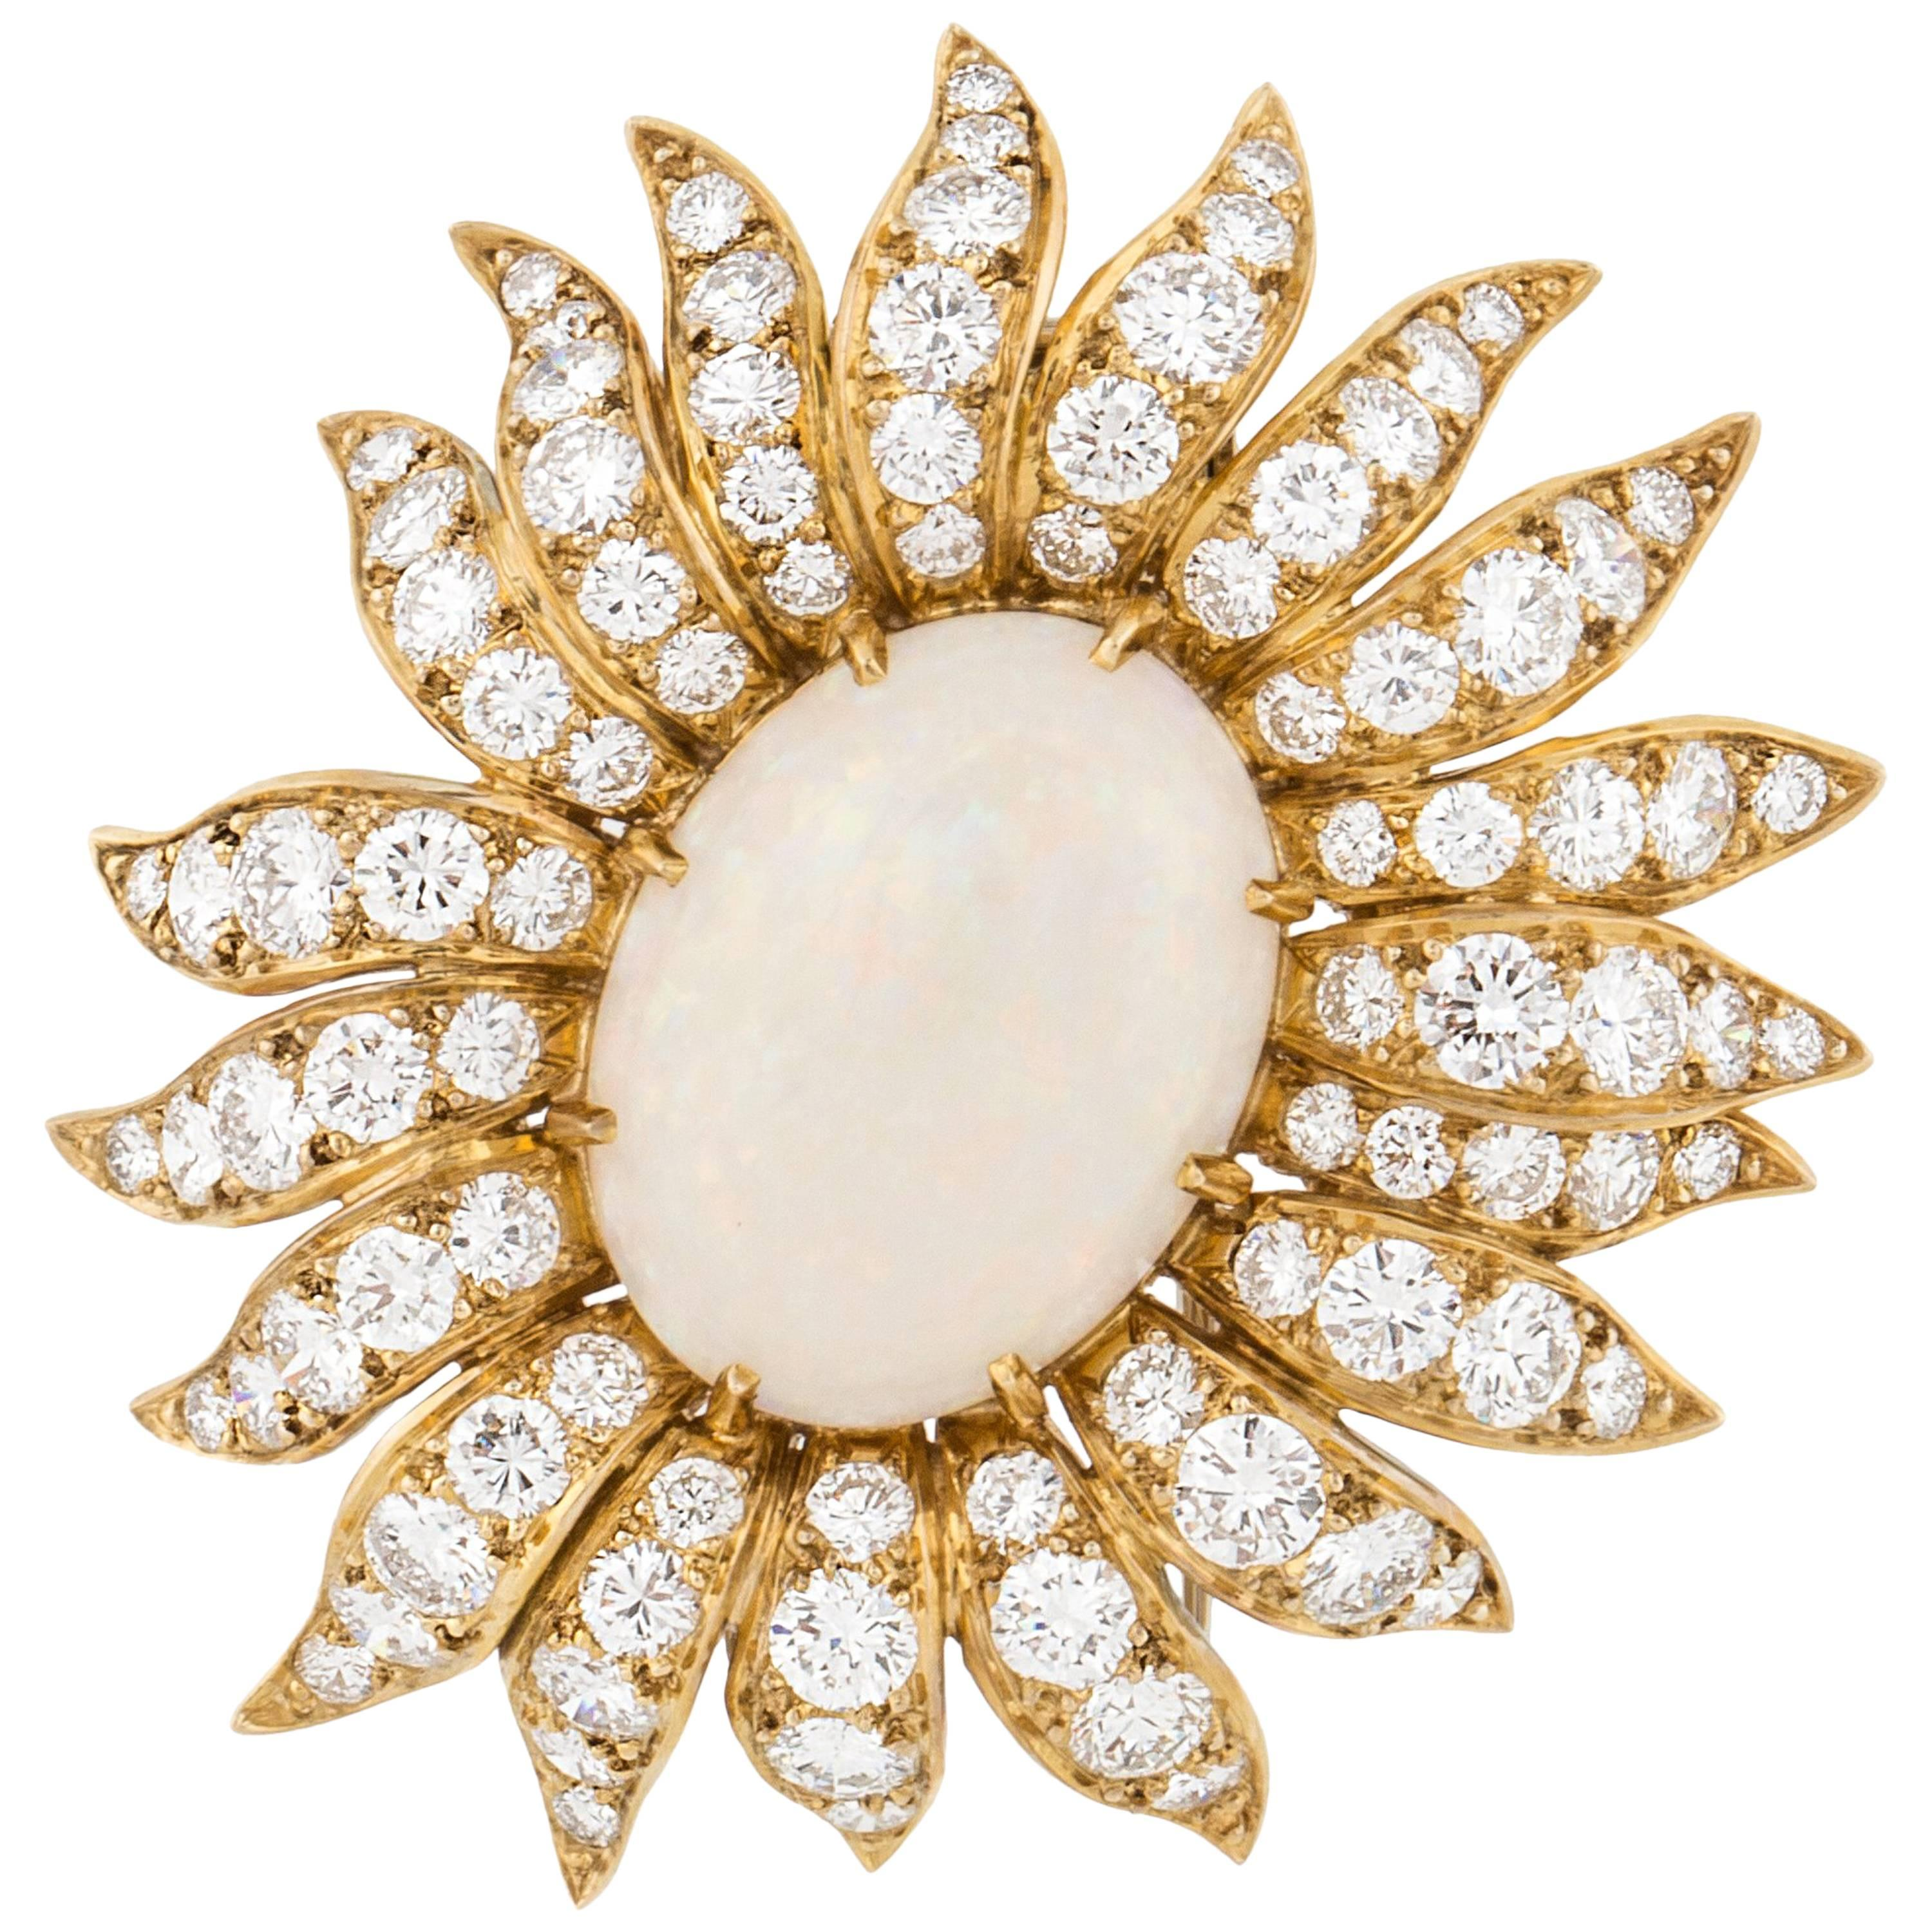 Cartier Opal and Diamond Brooch Clip in 18K Gold